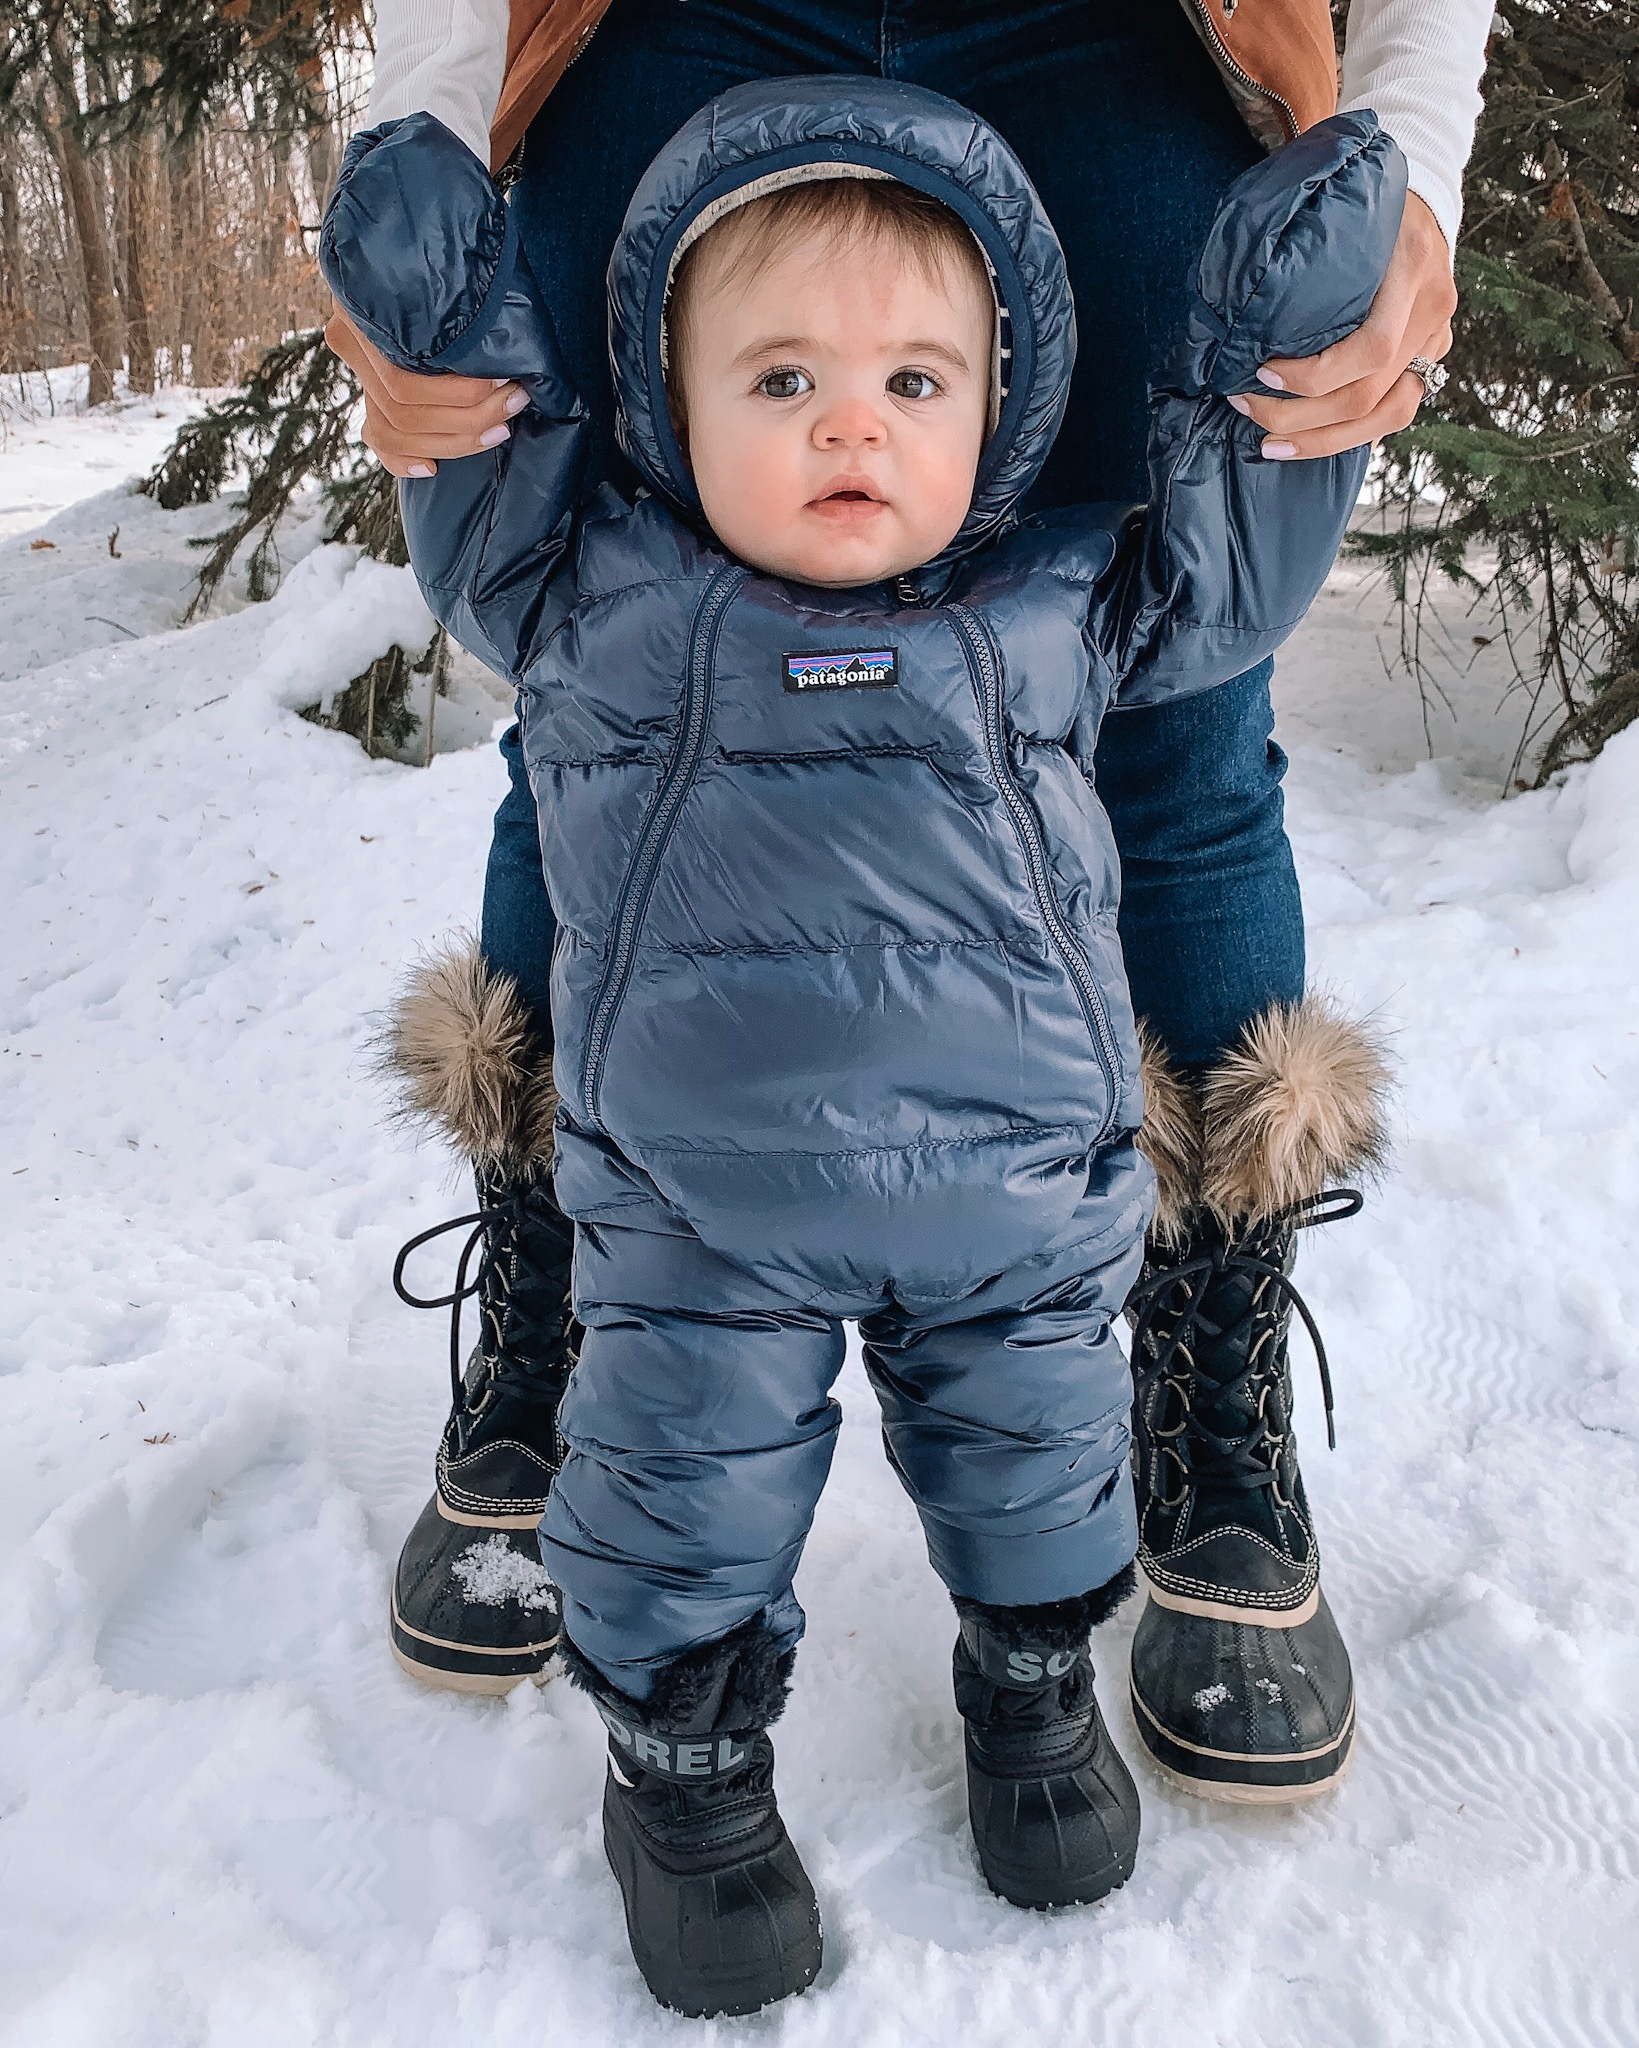 winter wear for family, gift guide, baby snowsuit, Patagonia, Sorel boots toddler, Joan of arctic, backcountry